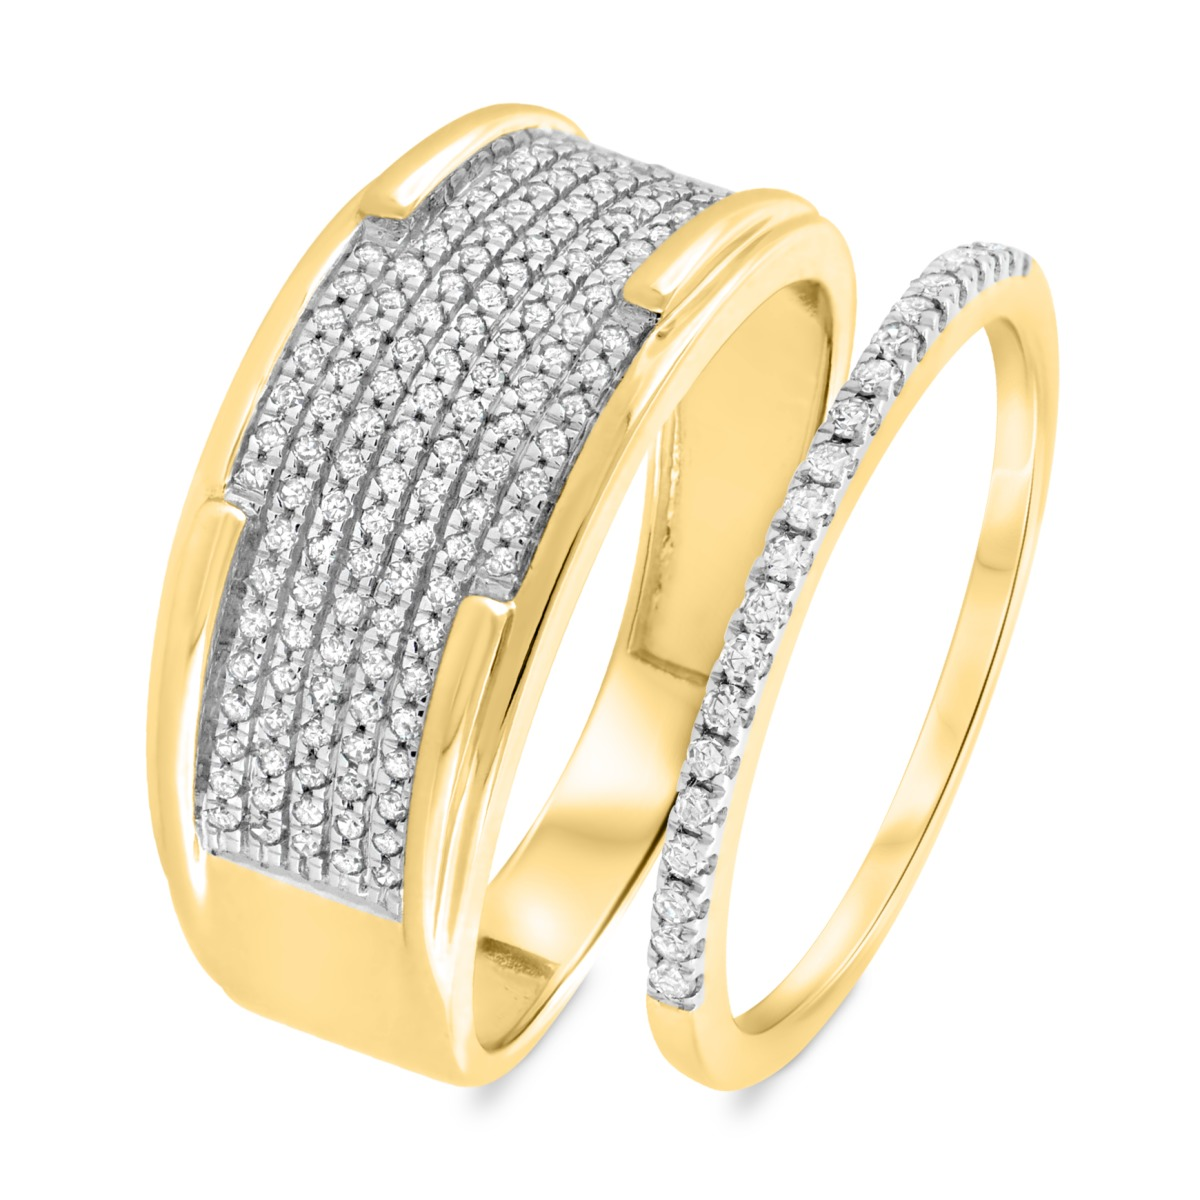 1/2 CT. T.W. Diamond Matching Wedding Band Set 10K Yellow Gold